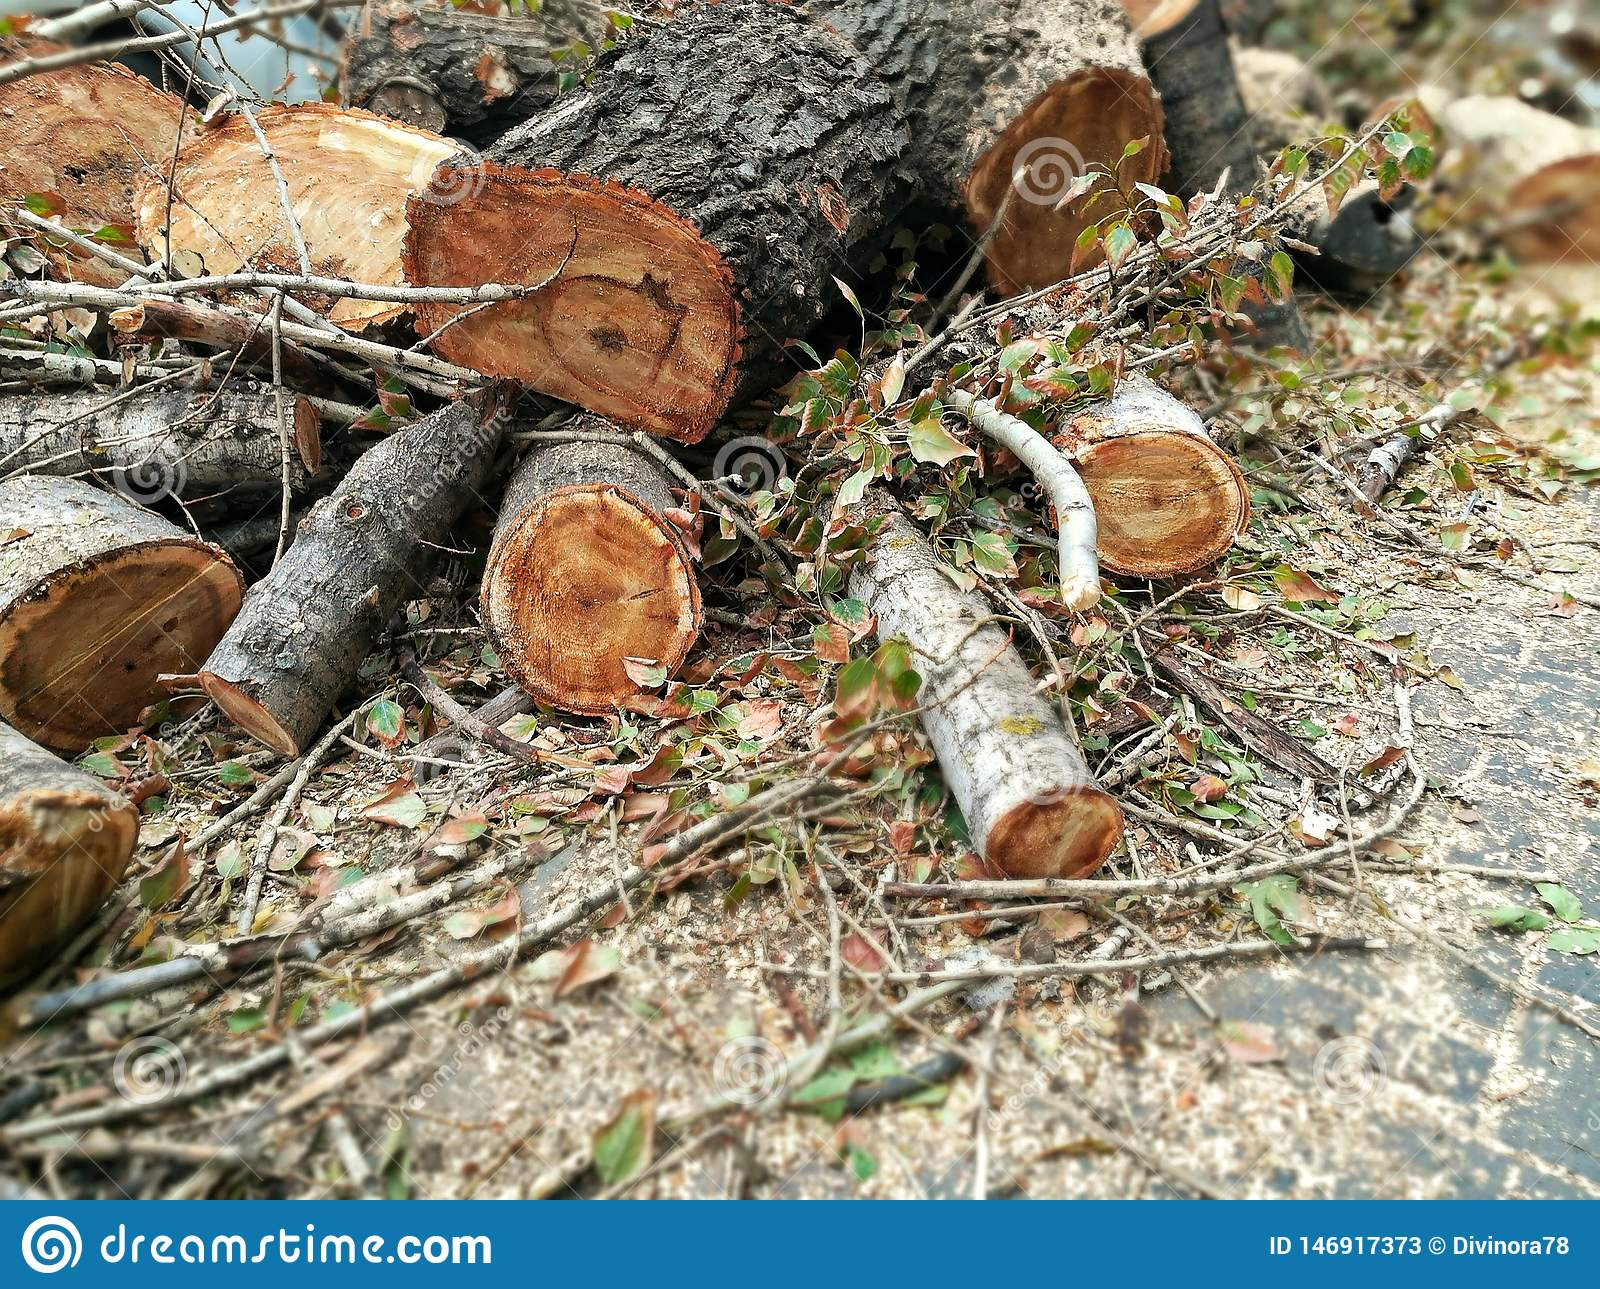 A pile of felled trunks of old trees